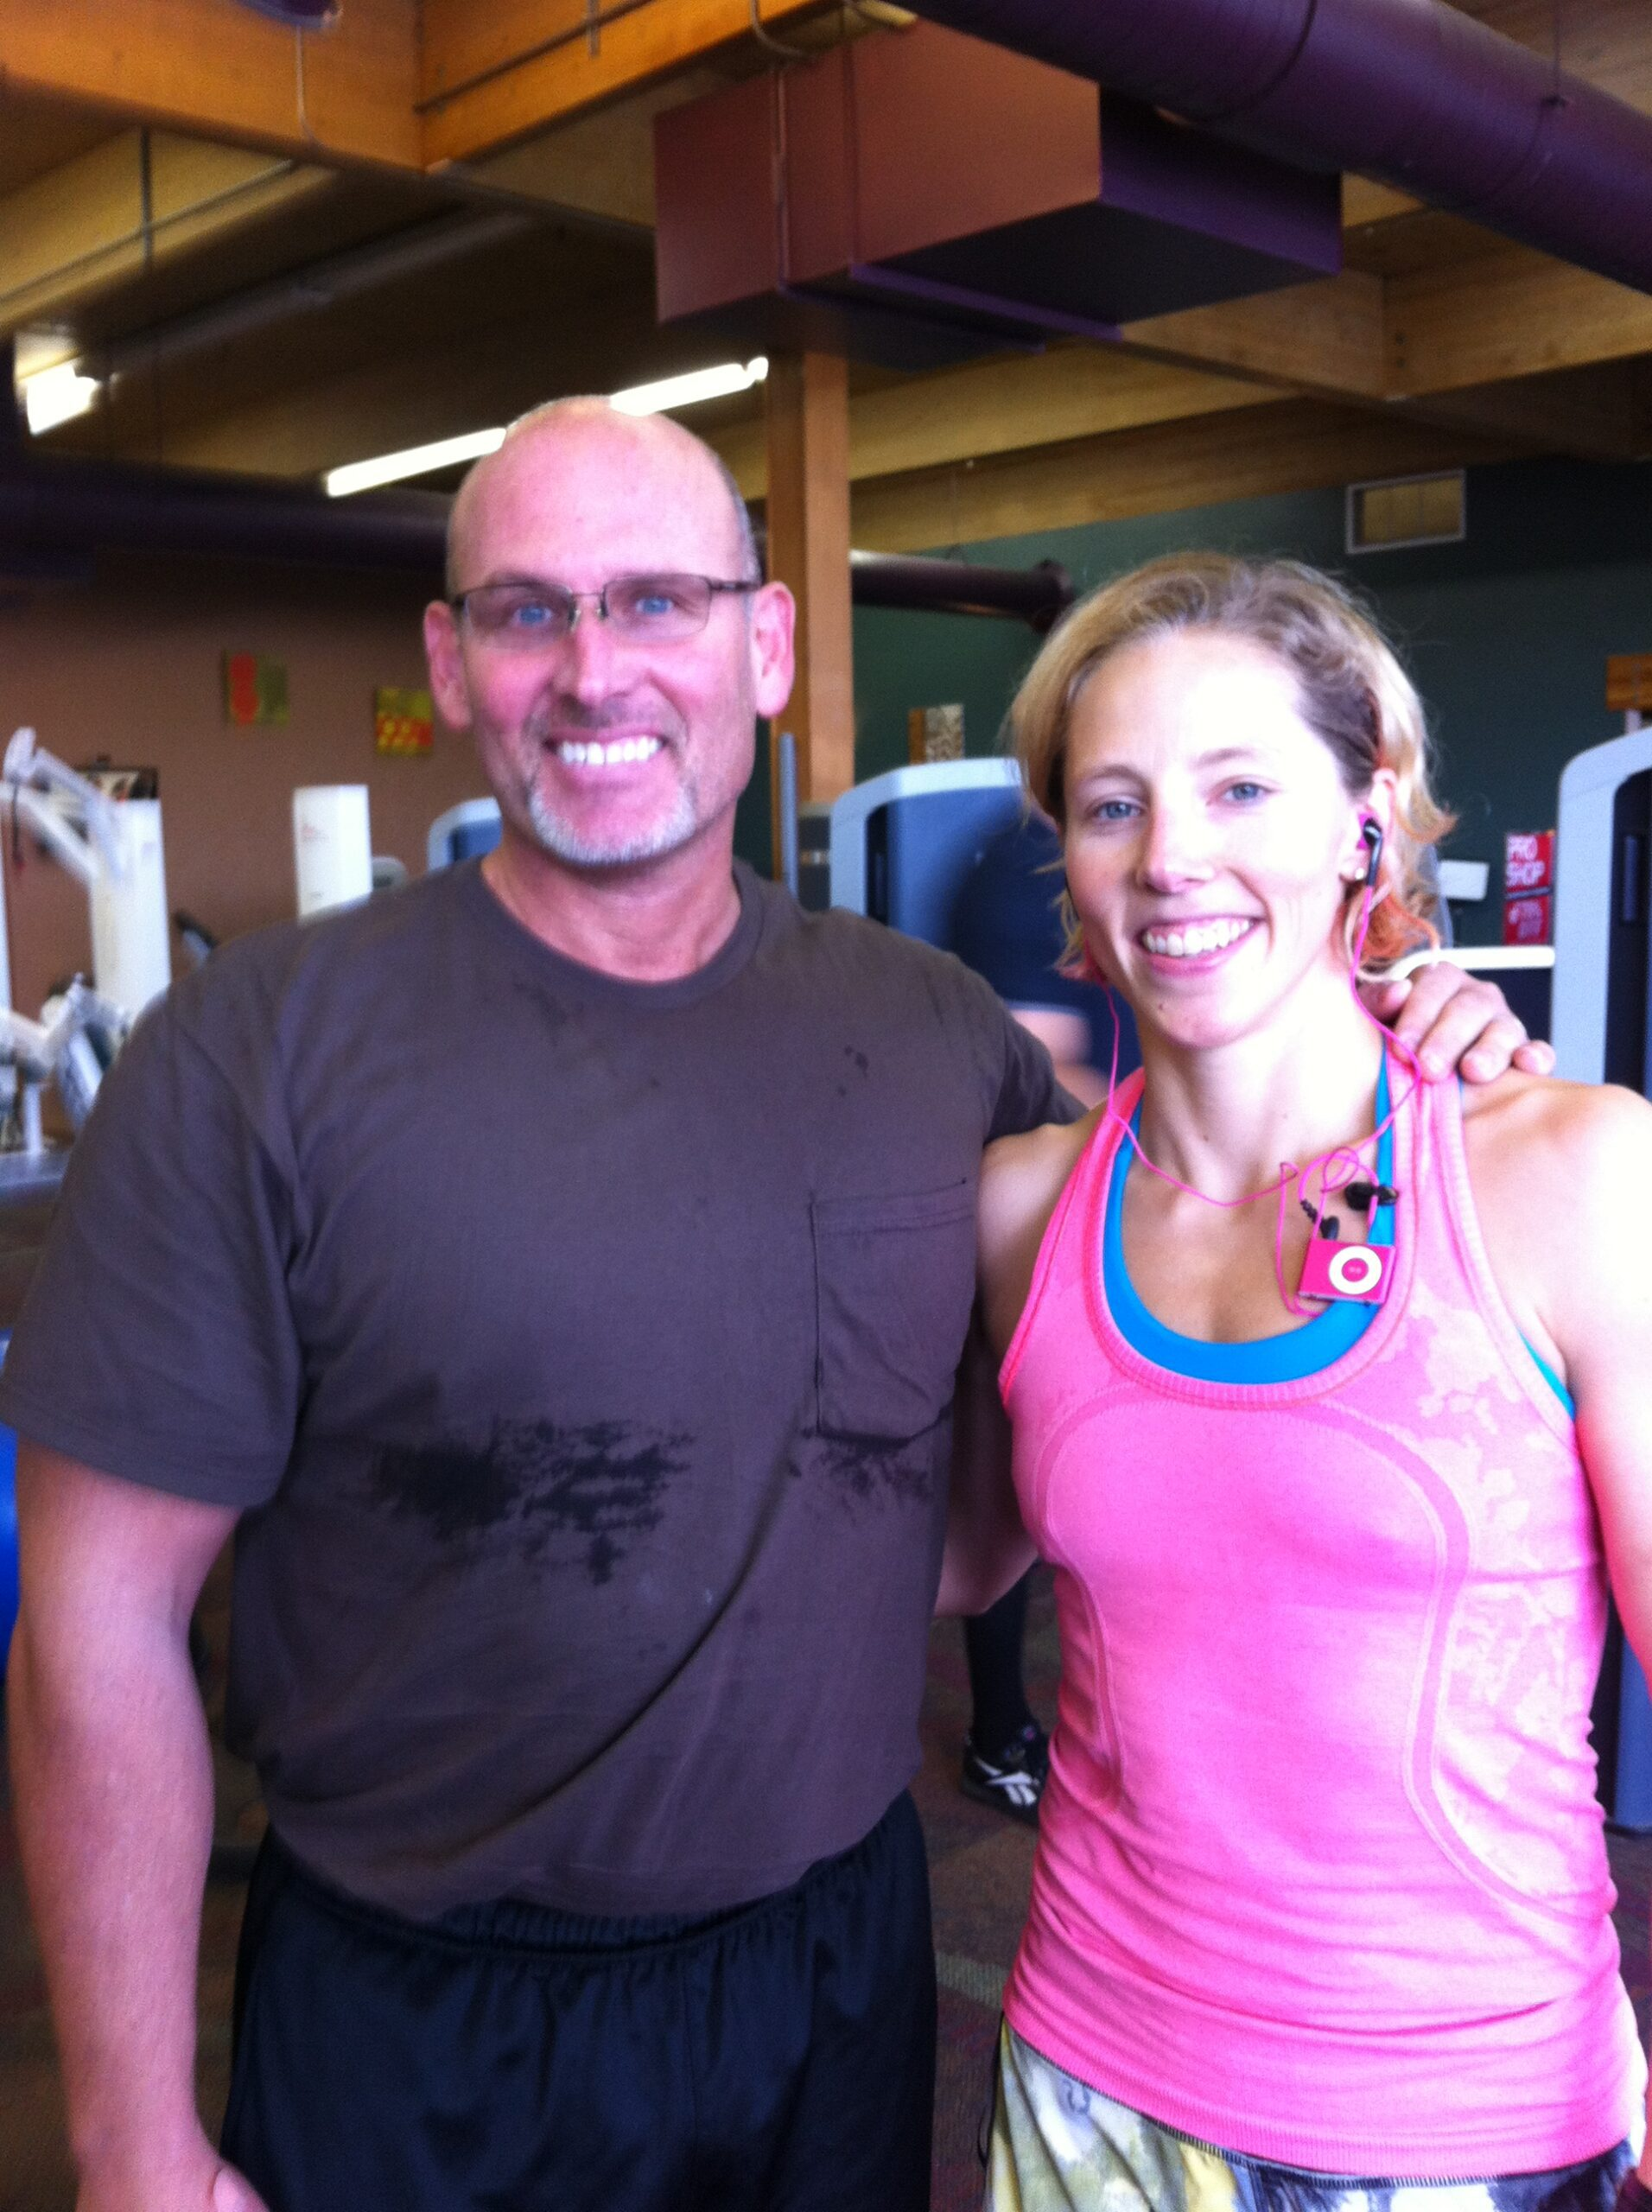 Dr. Brent Wells with Kikkan Randall - 5-time Olympic Skier